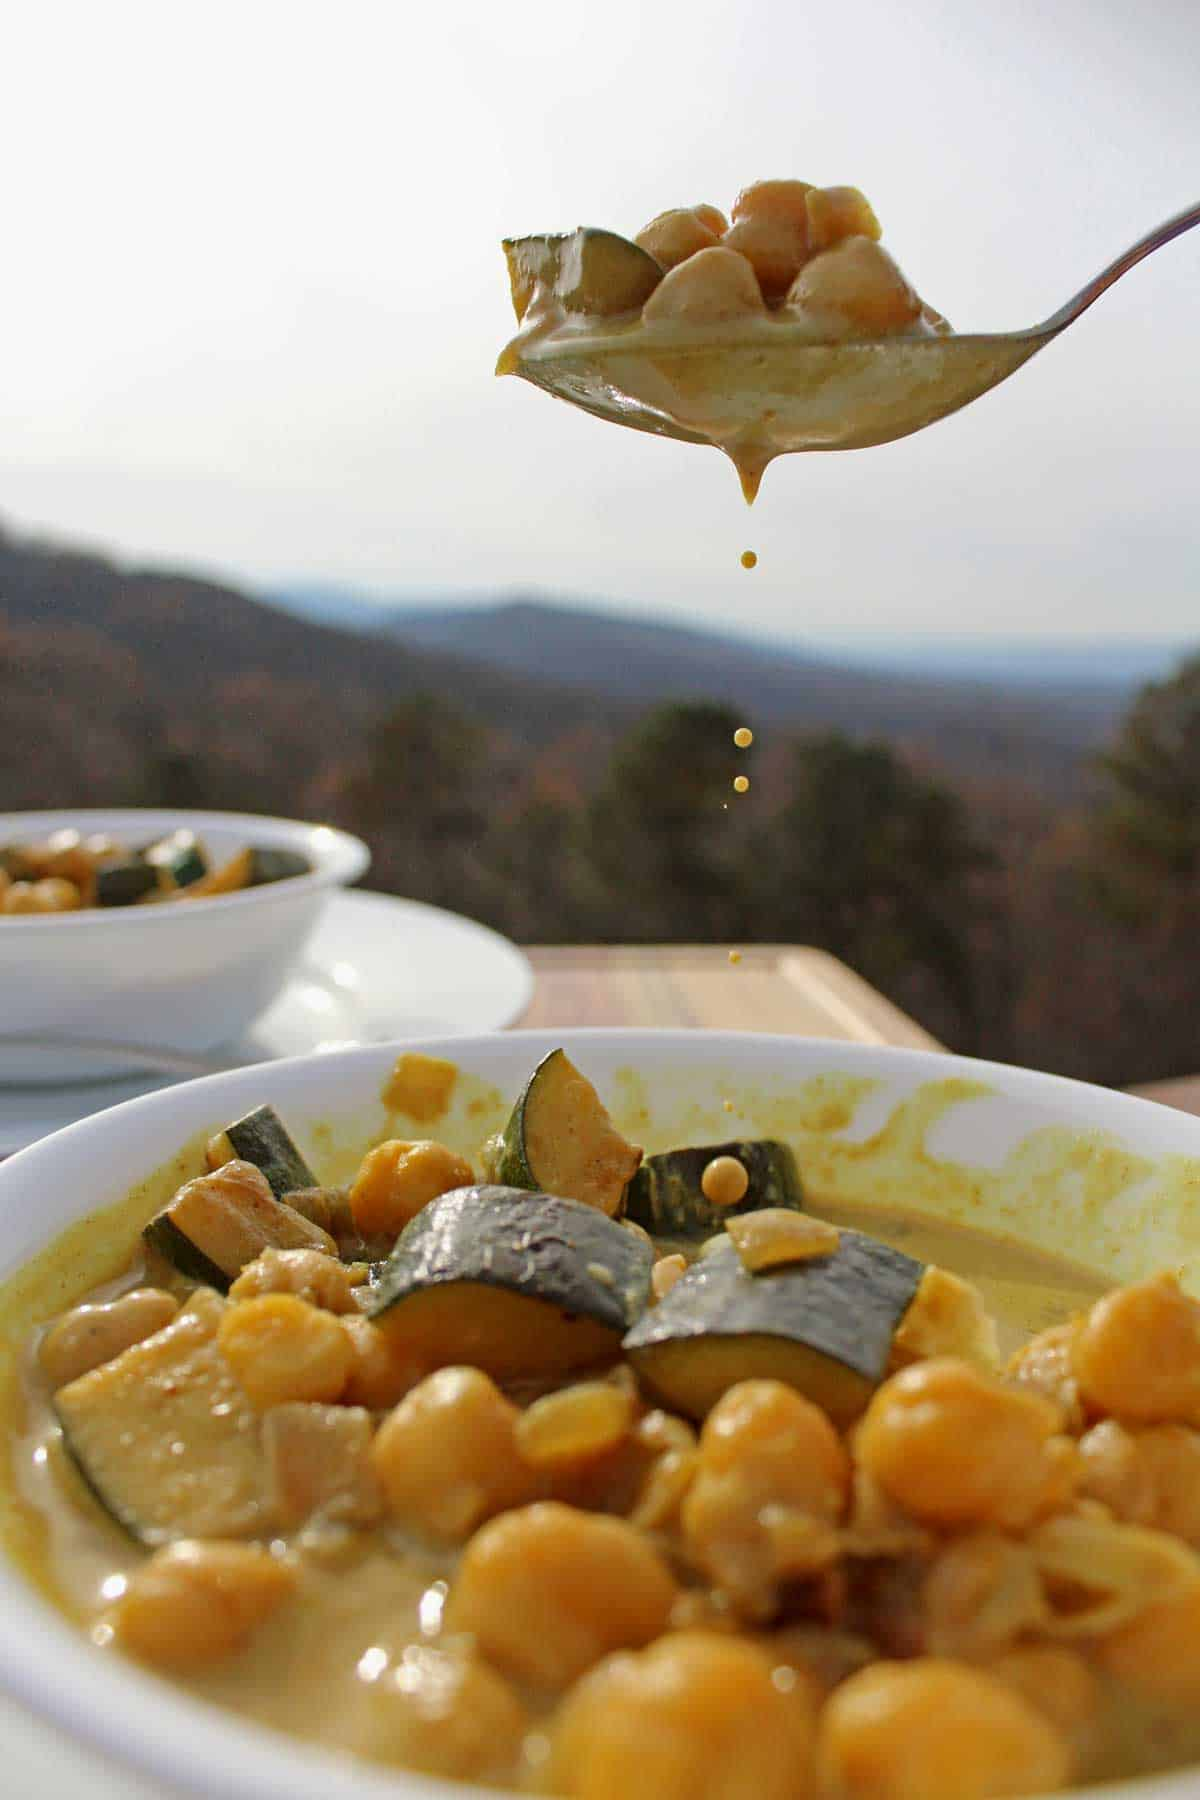 A dripping spoonful of stew with the mountains in the background.